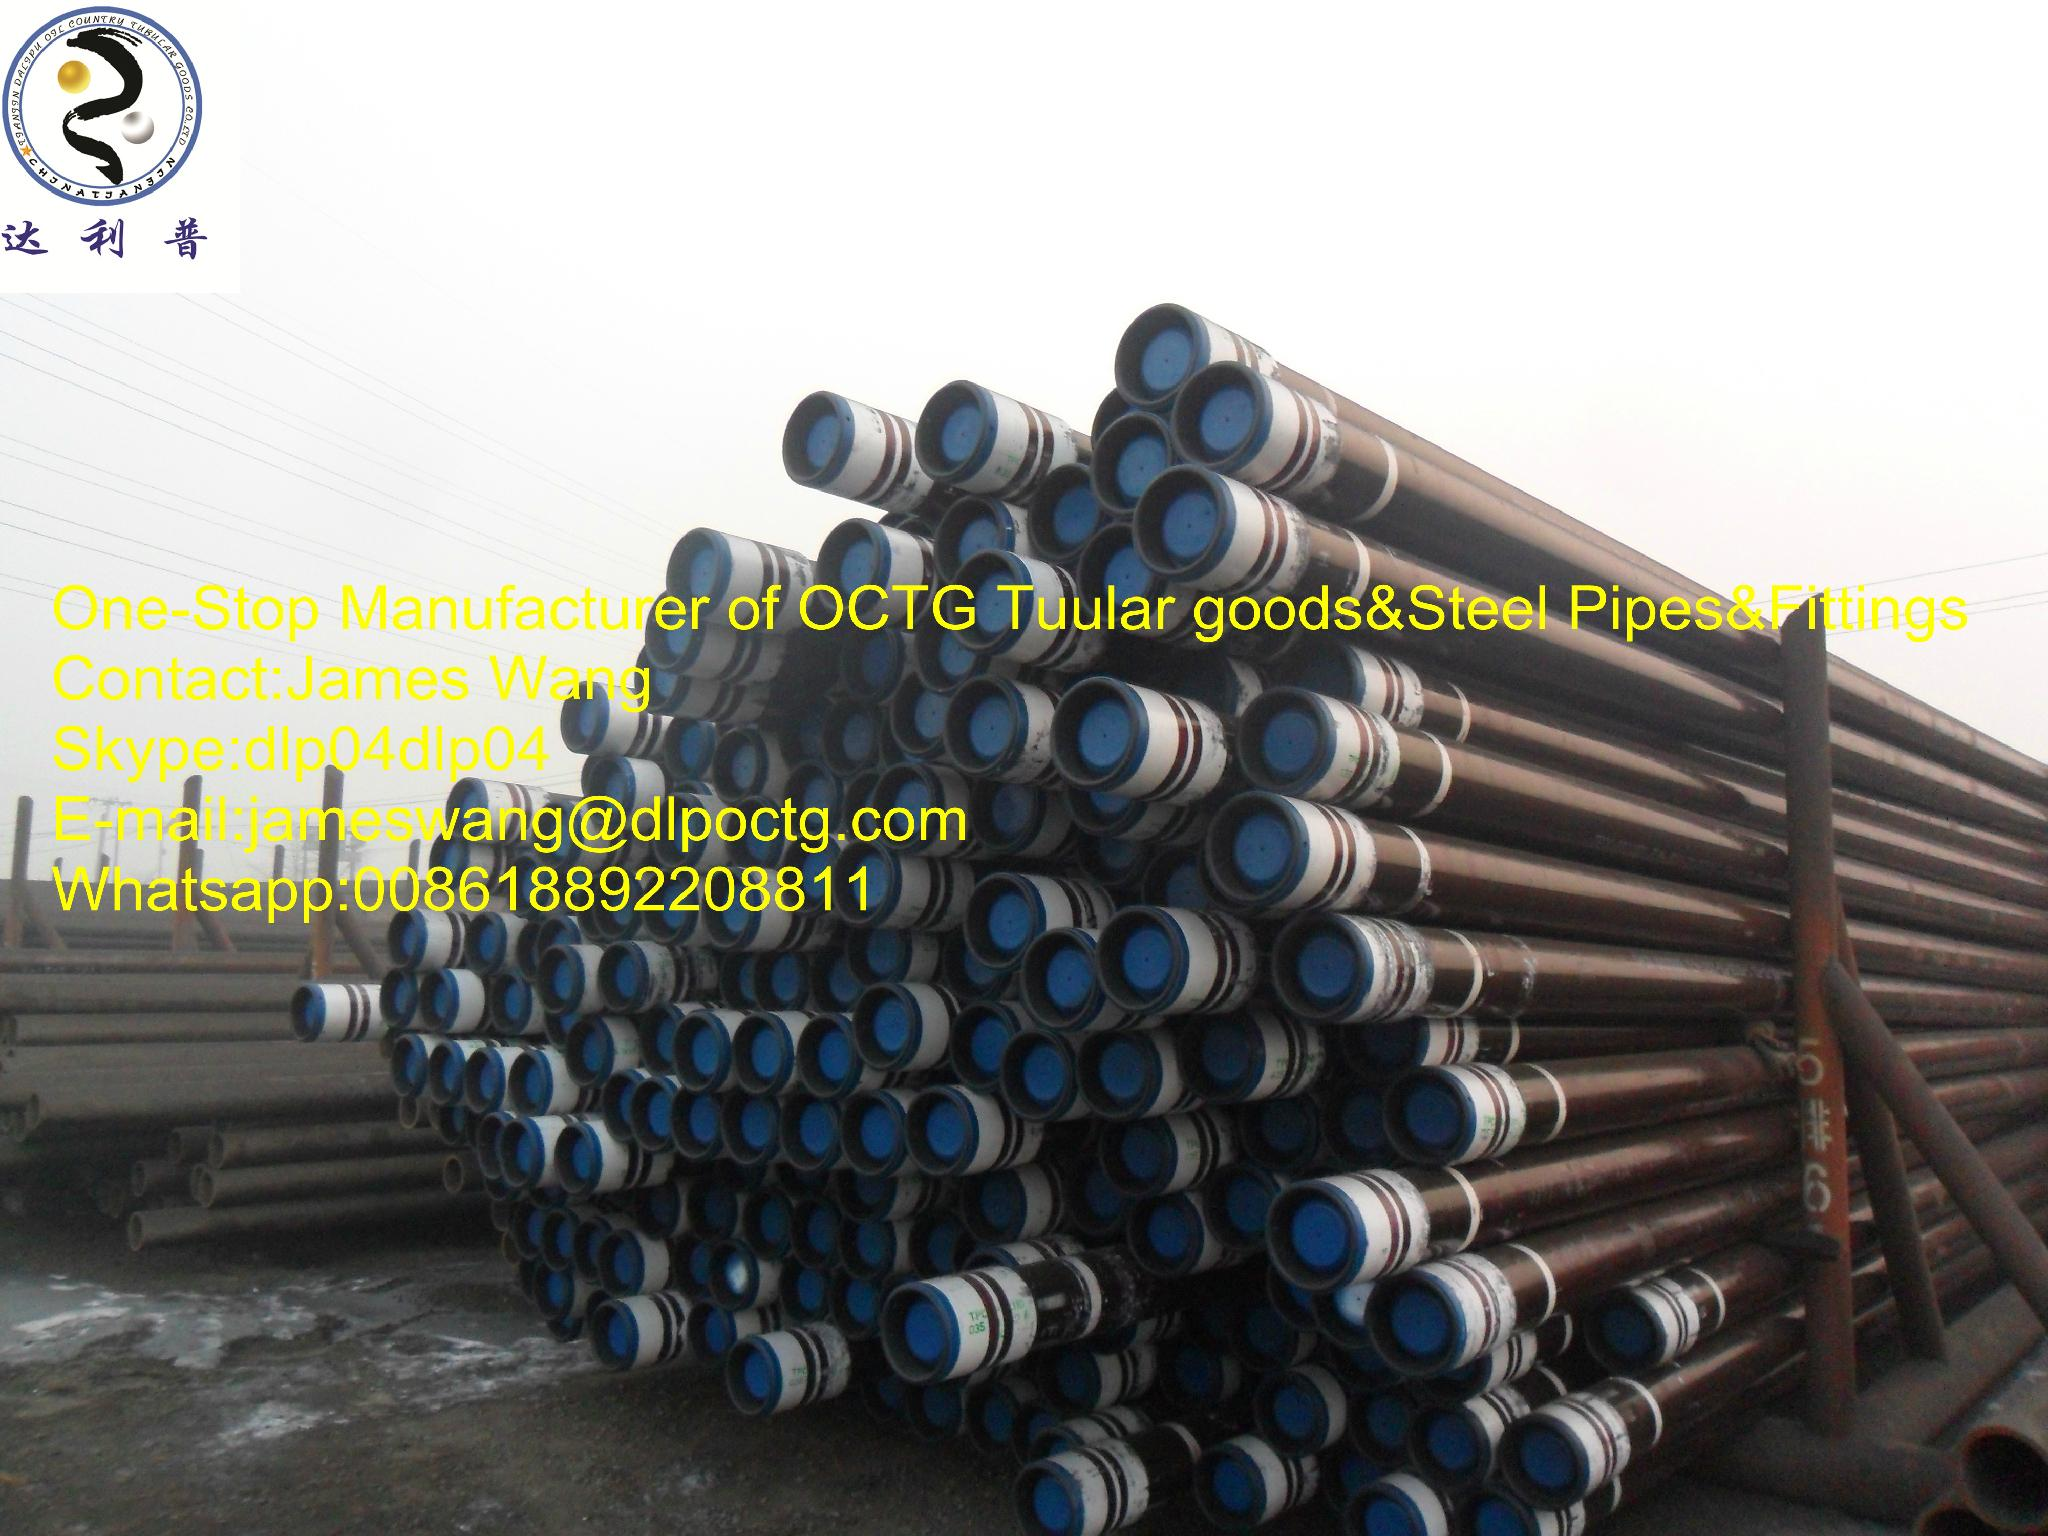 Casing Pipe P110-28Cr - China - Manufacturer - Product